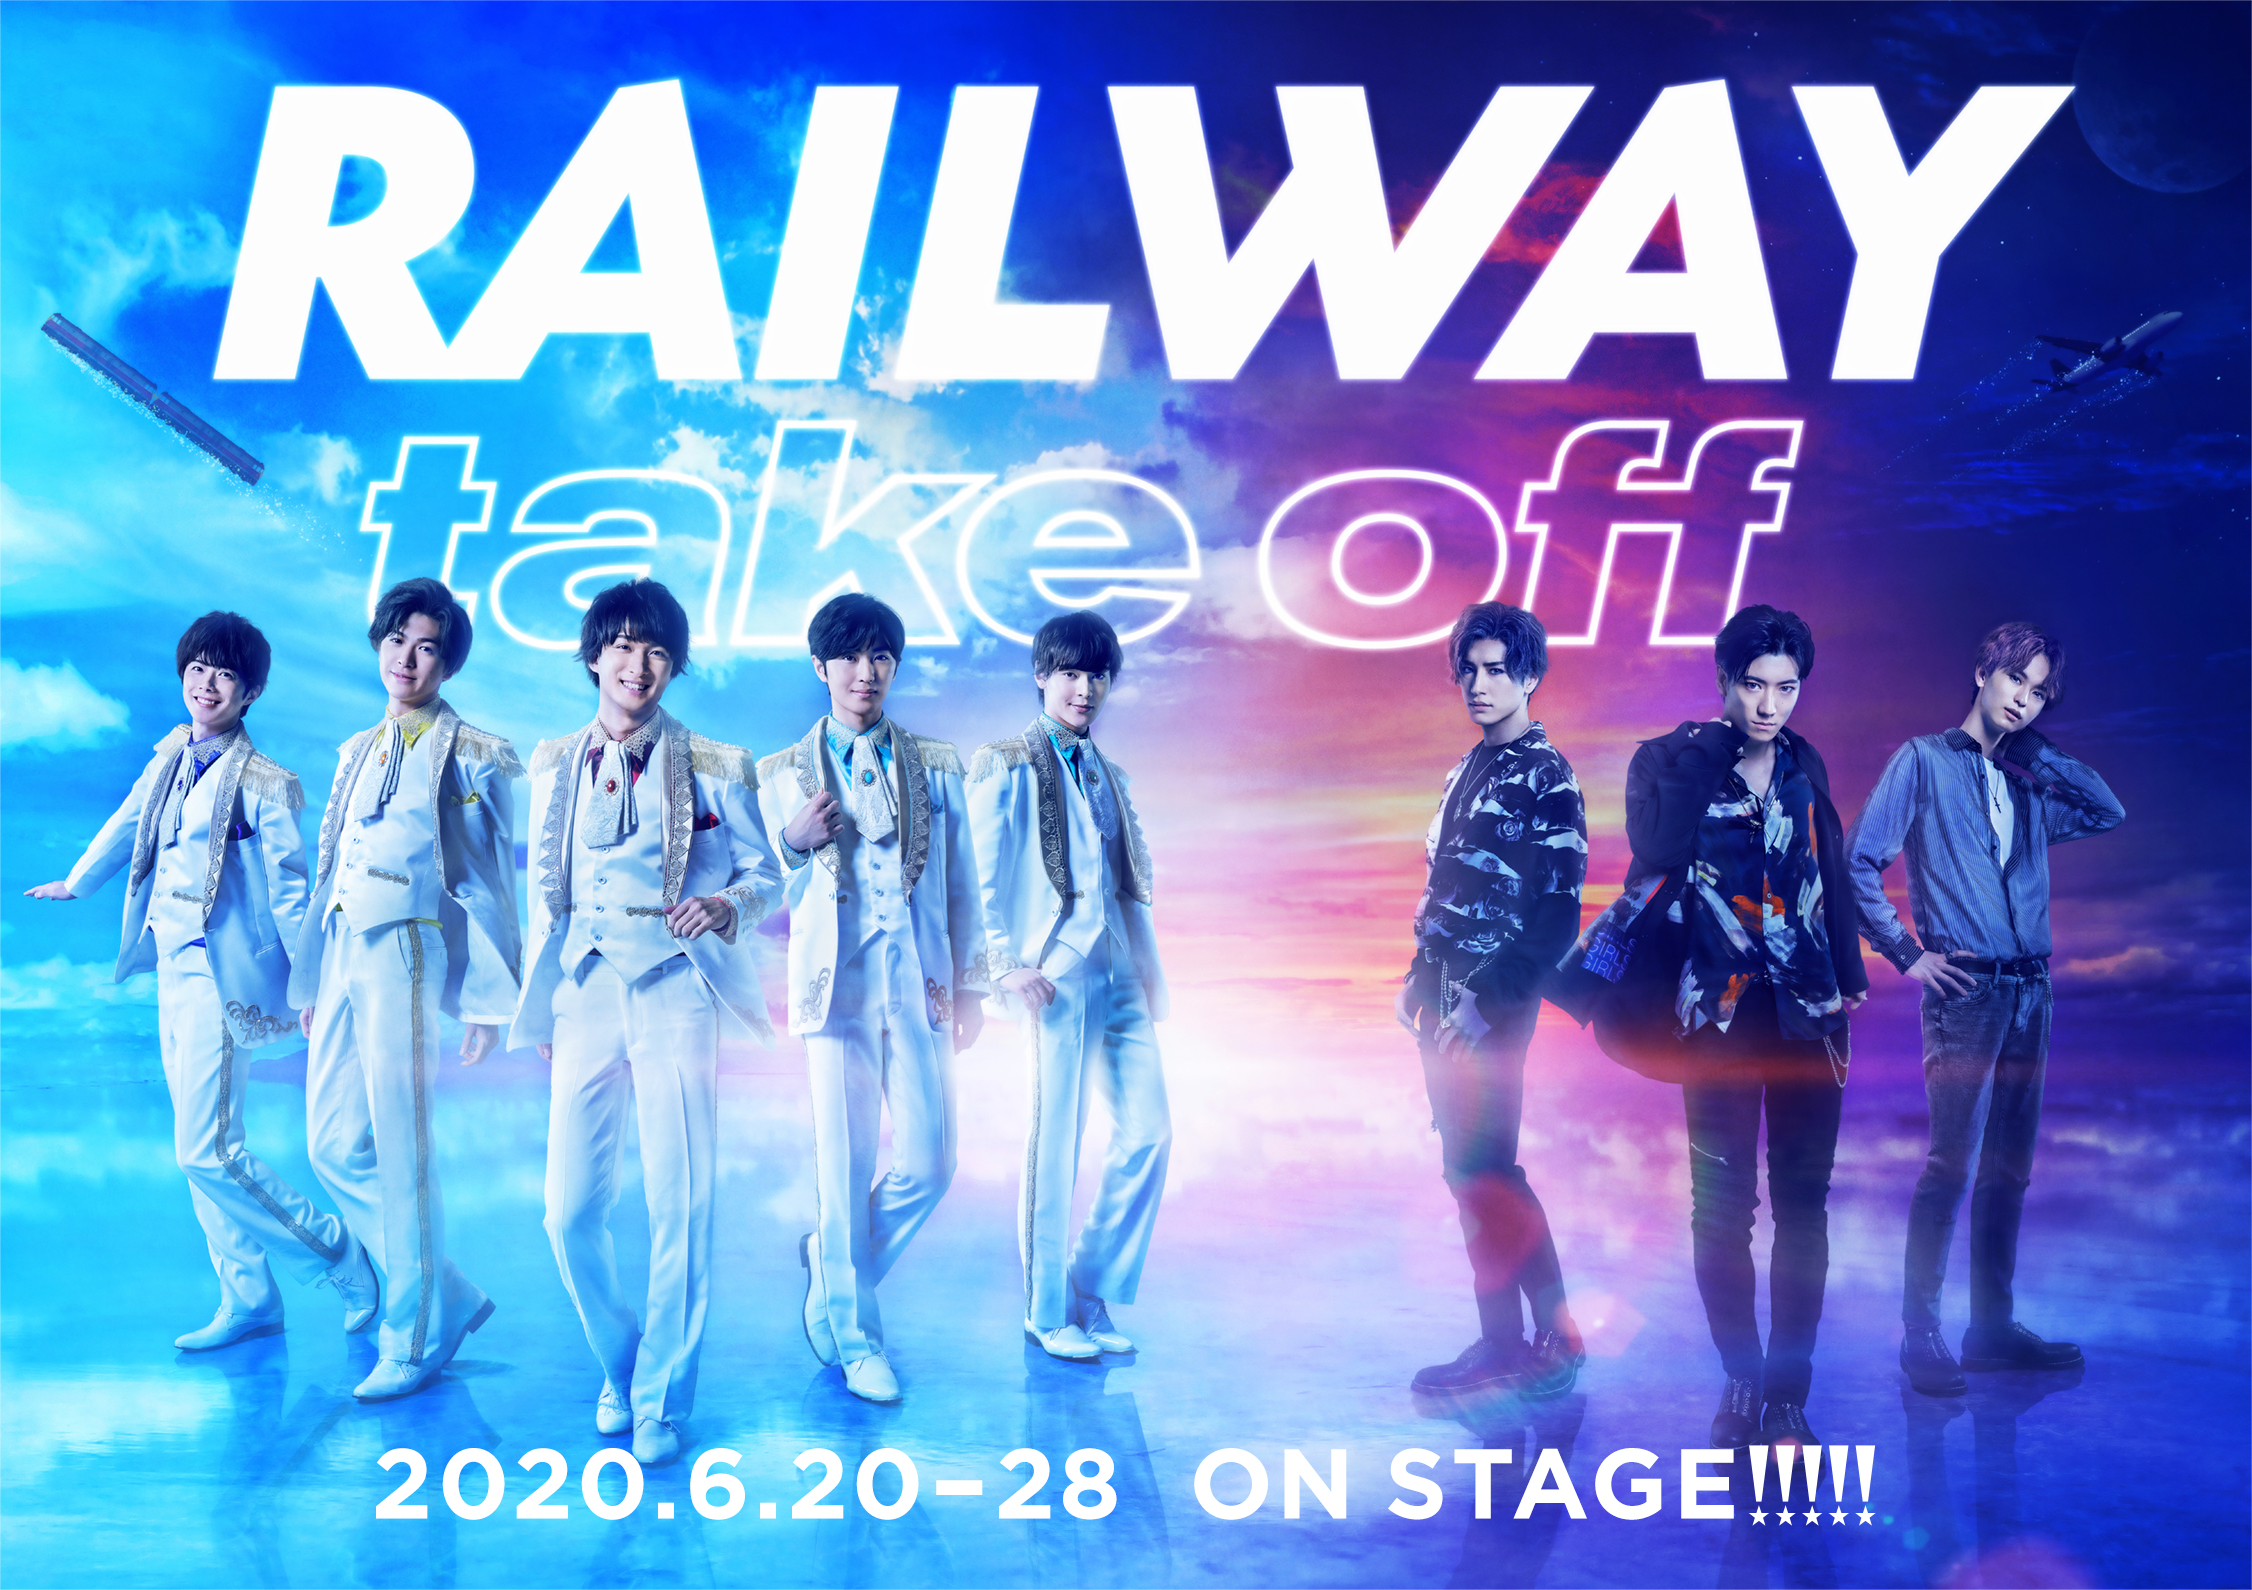 2020.6.20-28 ON STAGE!!!!!